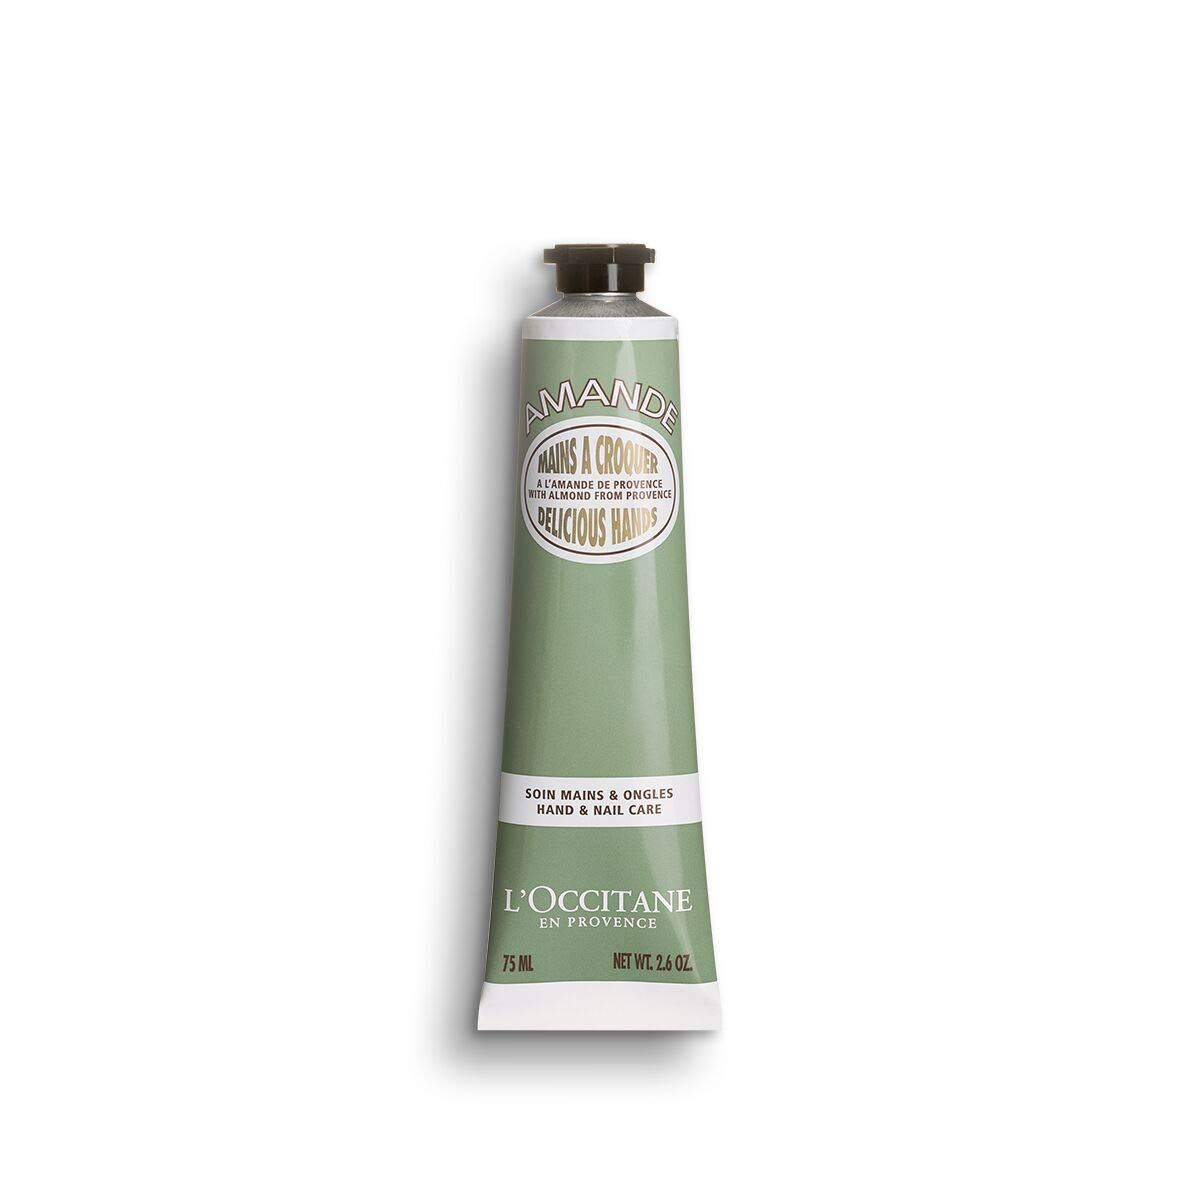 Loccitane Almond Delicious Hands Moisturizing Hand Cream Enriched